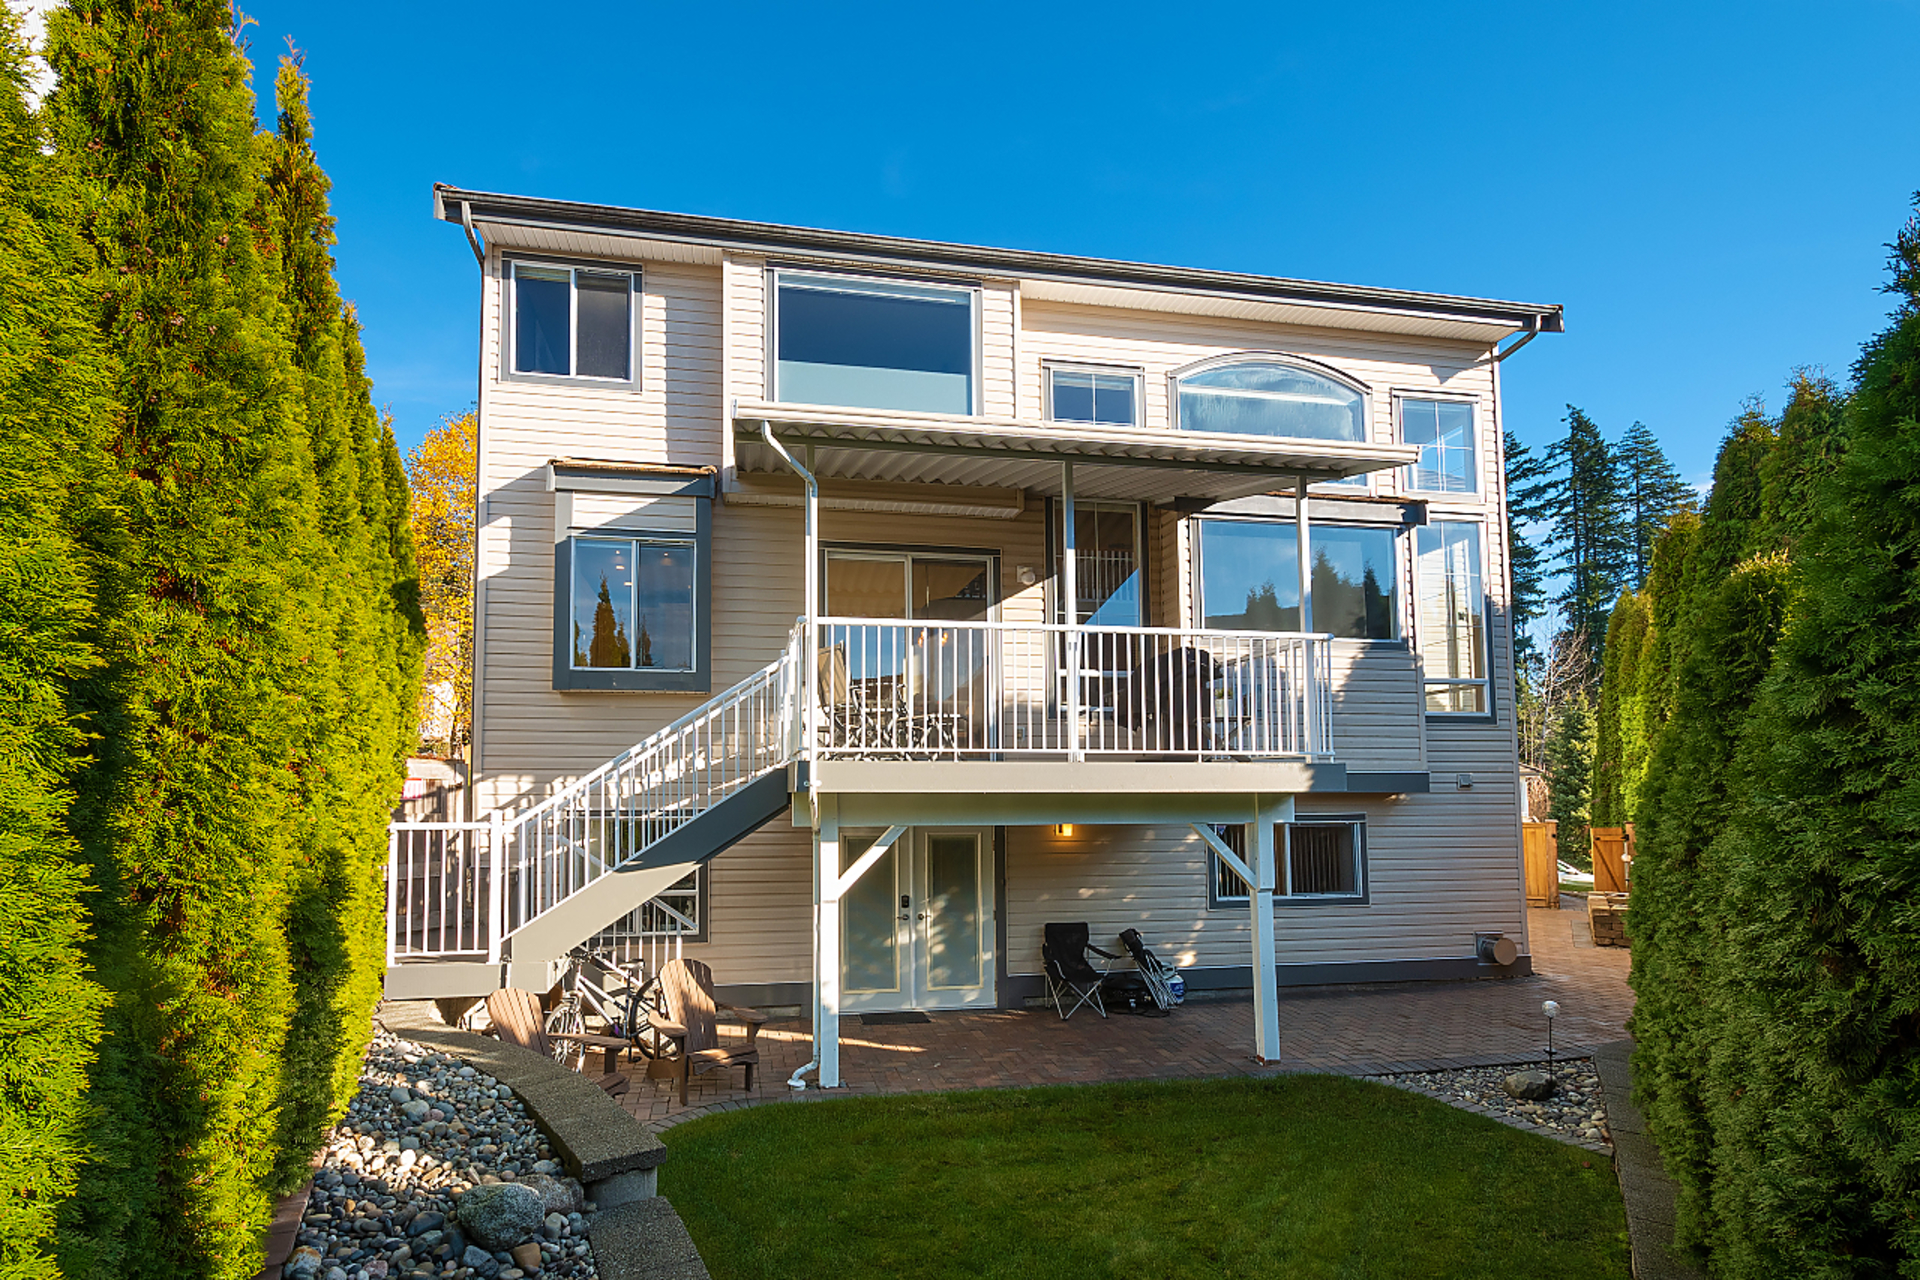 045 at 180 -  Aspenwood Drive, Heritage Woods PM, Port Moody